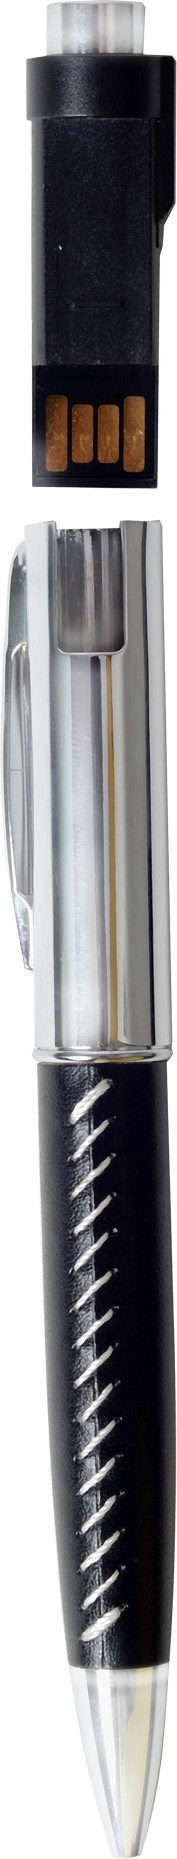 View Moda Xclusive PCP005 8 GB Pen Drive(White) Price Online(Moda Xclusive)